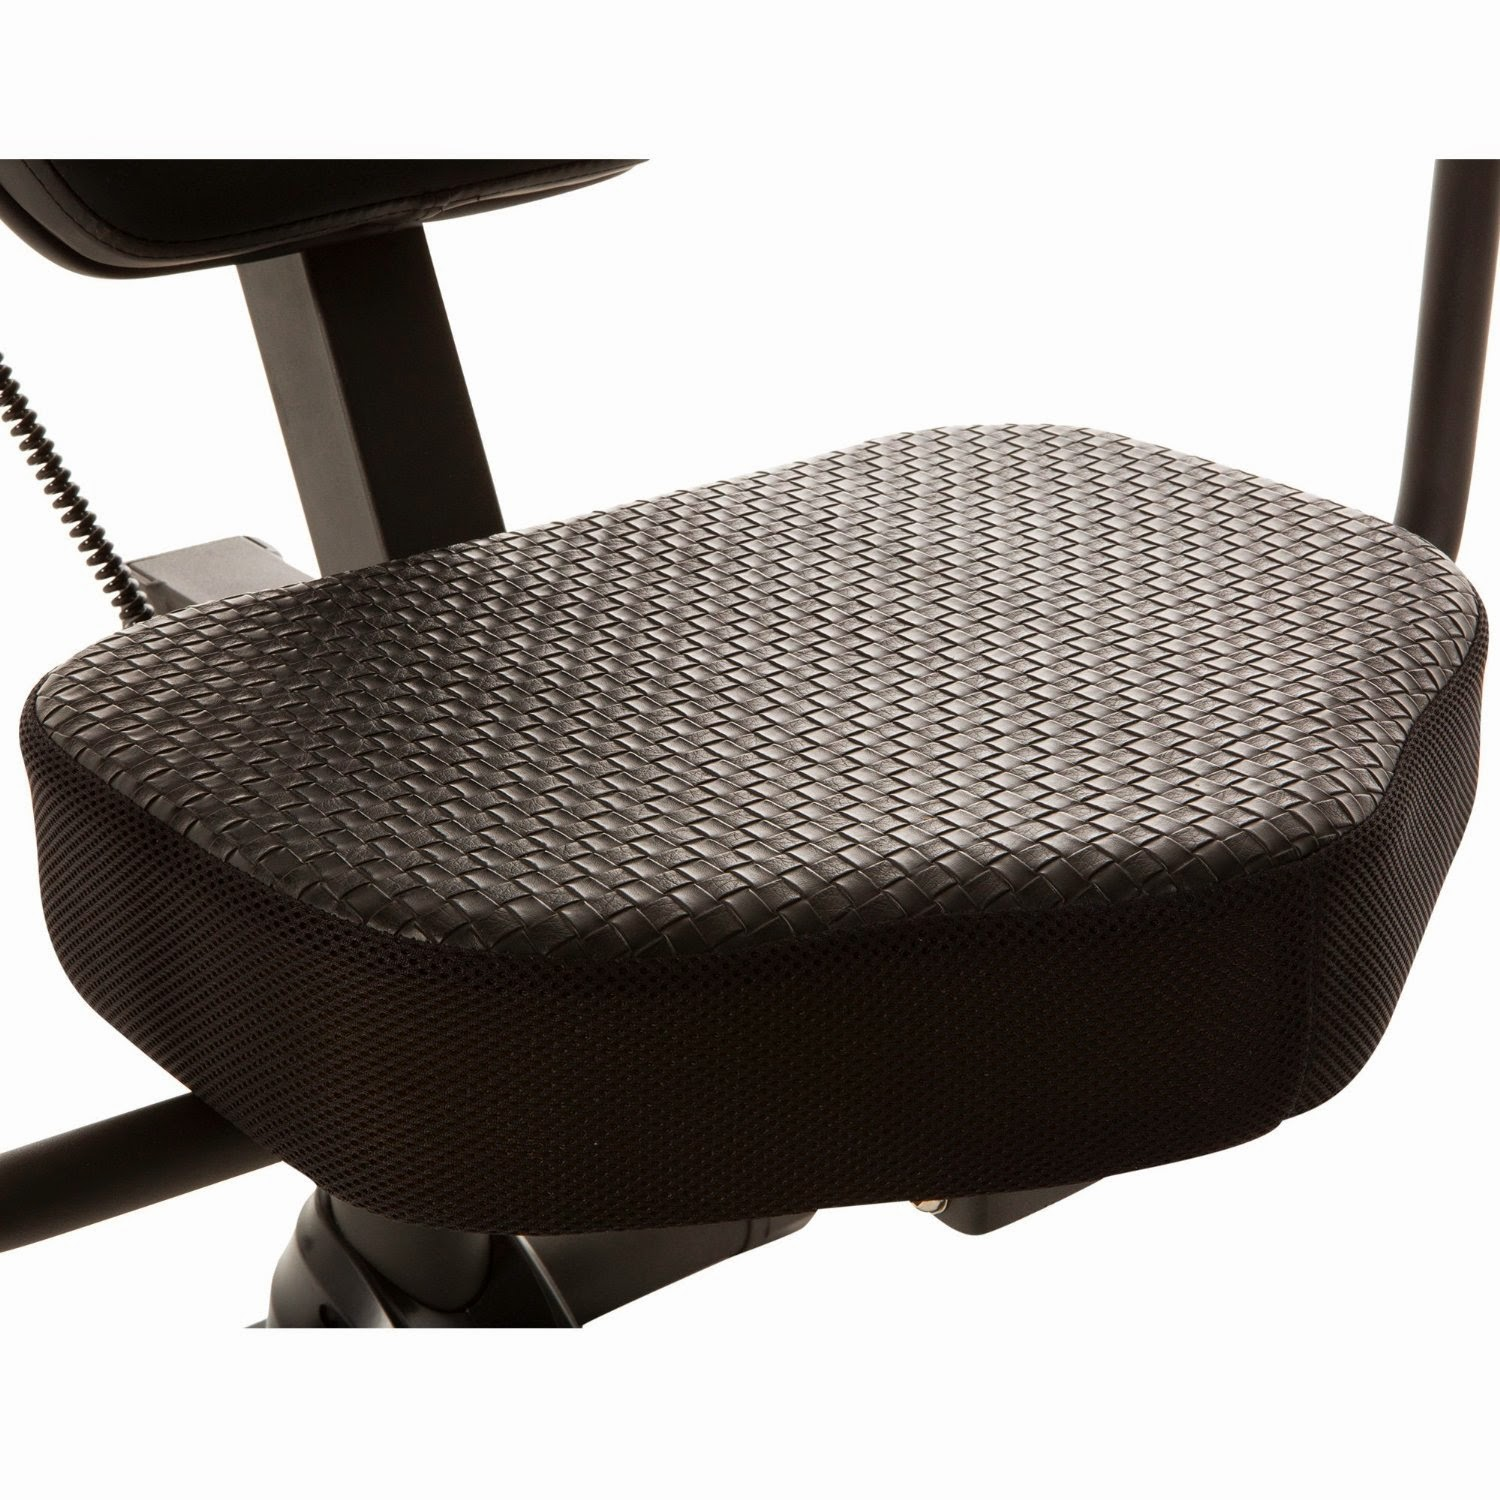 Exerpeutic 2000 Air Soft Seat with contoured back-rest for comfortable back support